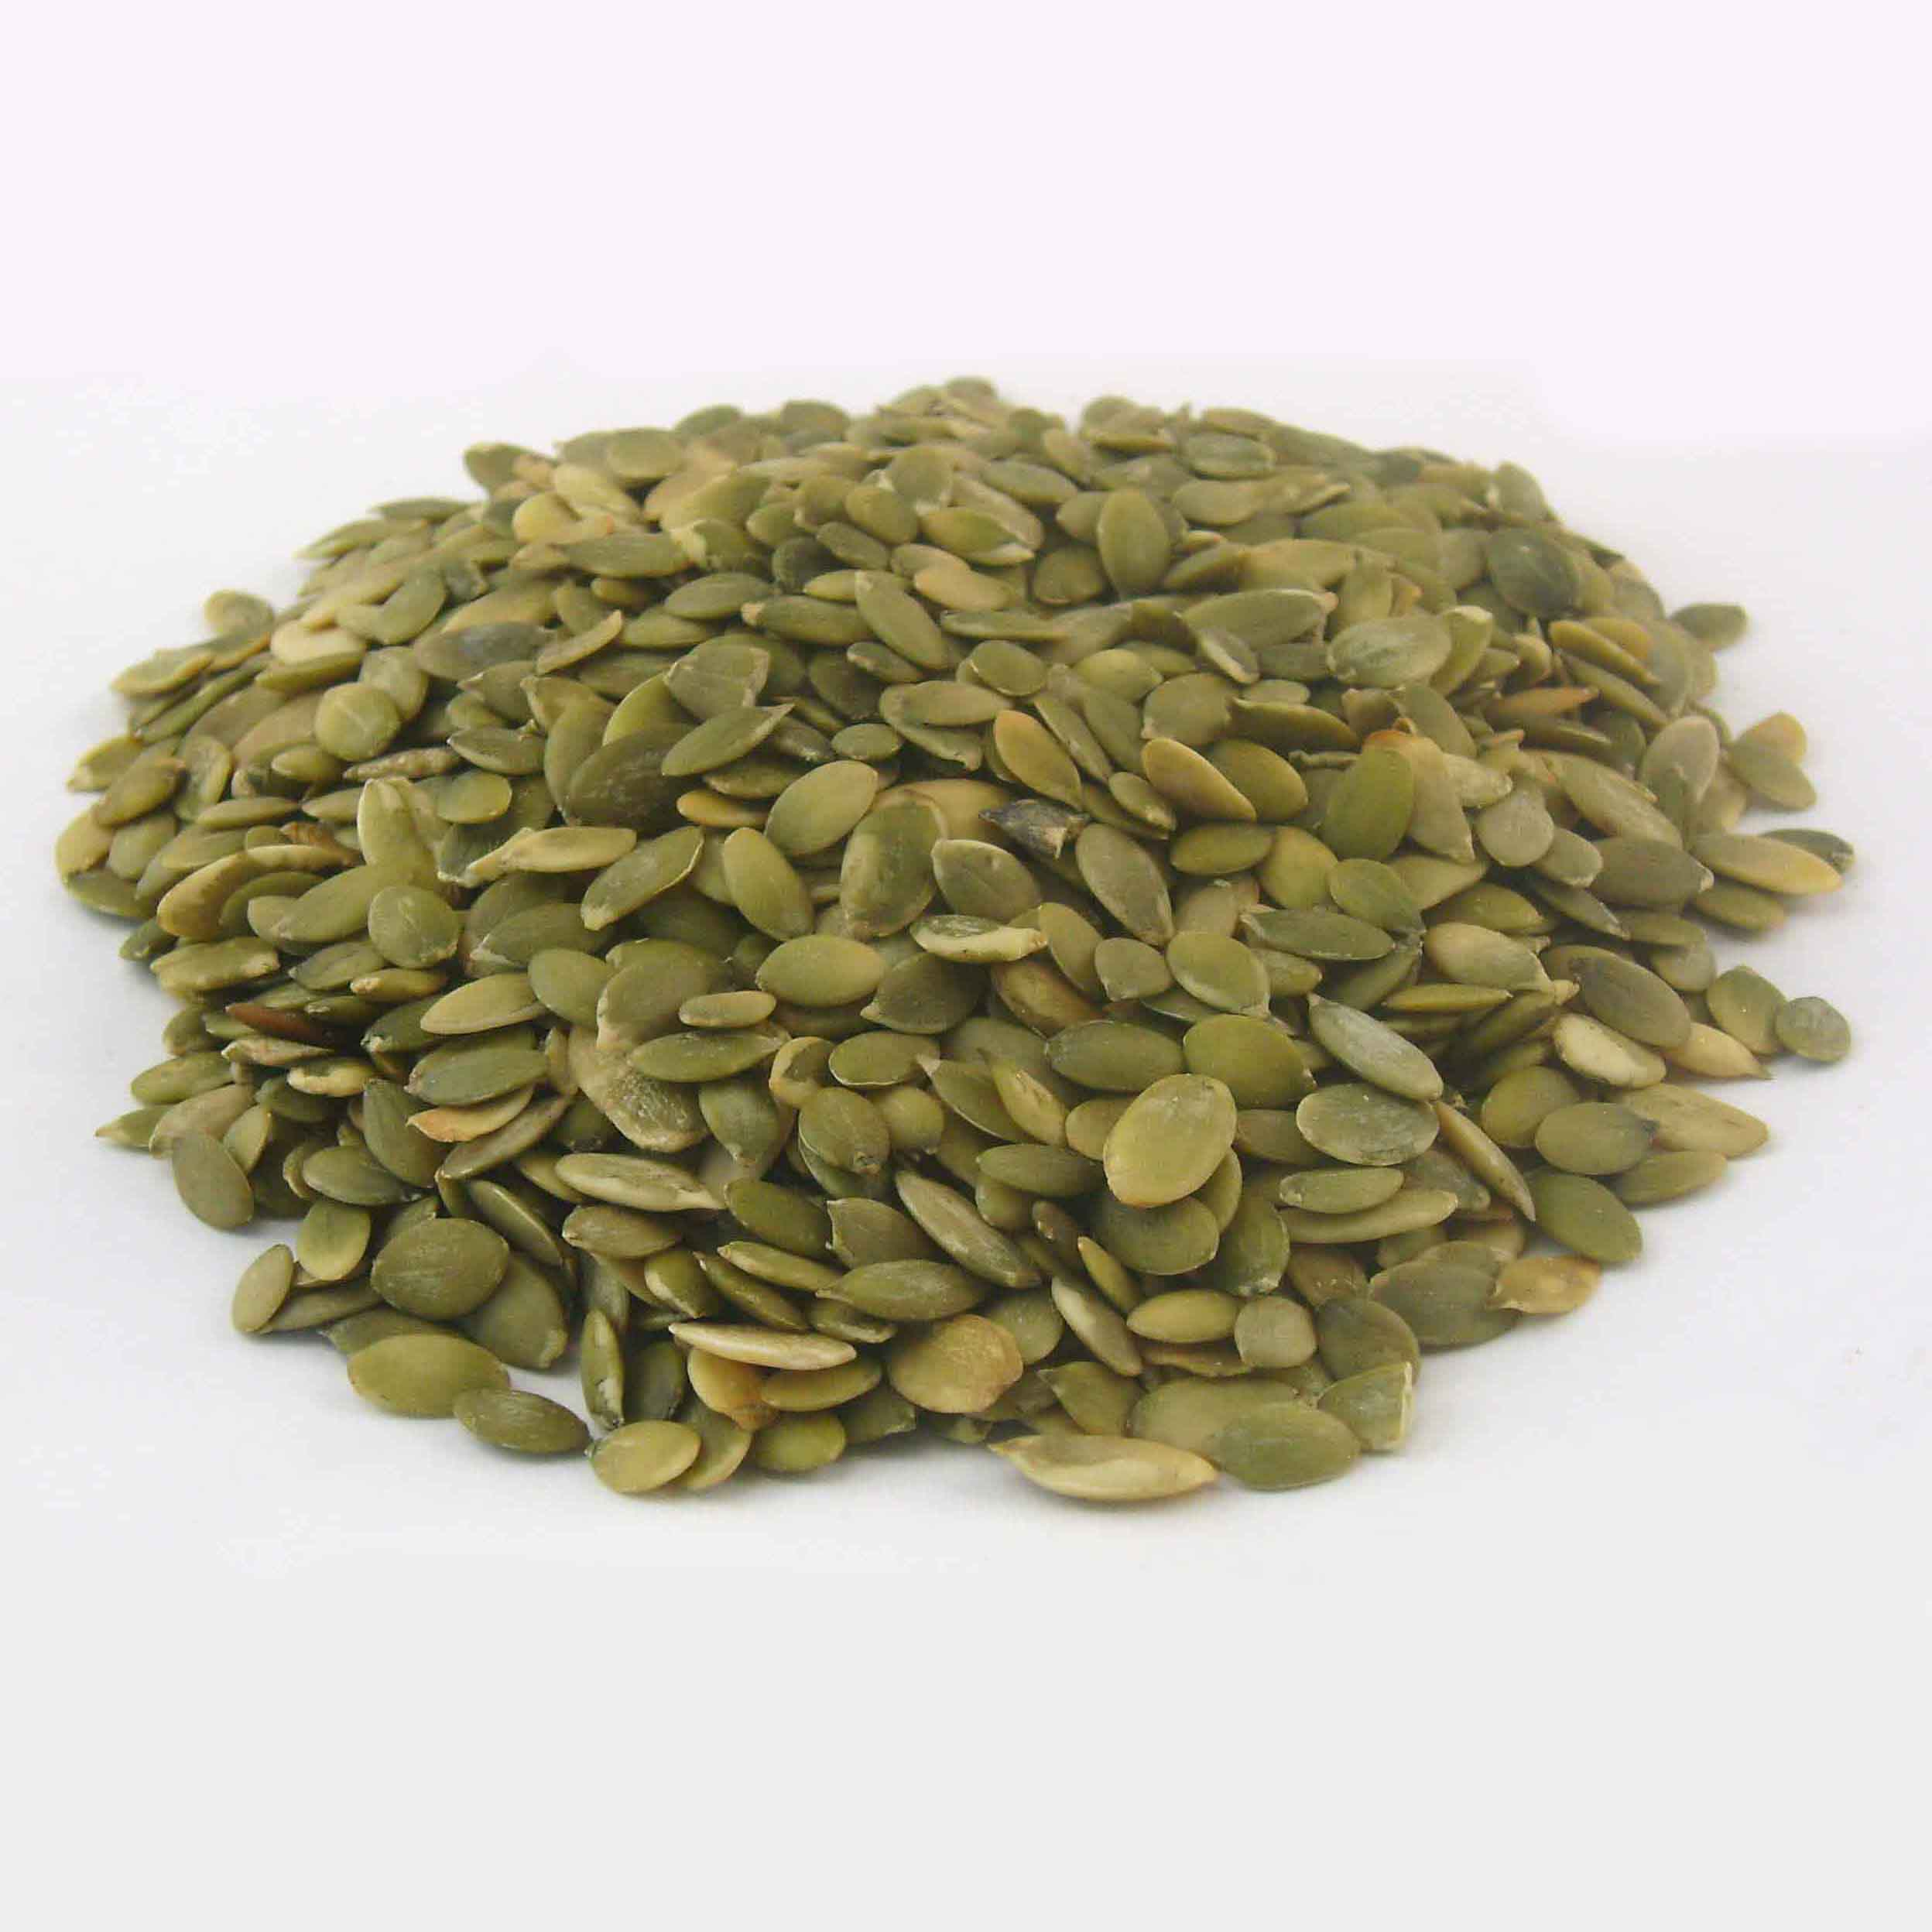 Pepitas 5kg - BULK PRODUCTS, Seeds/Dietary Products - Product Detail